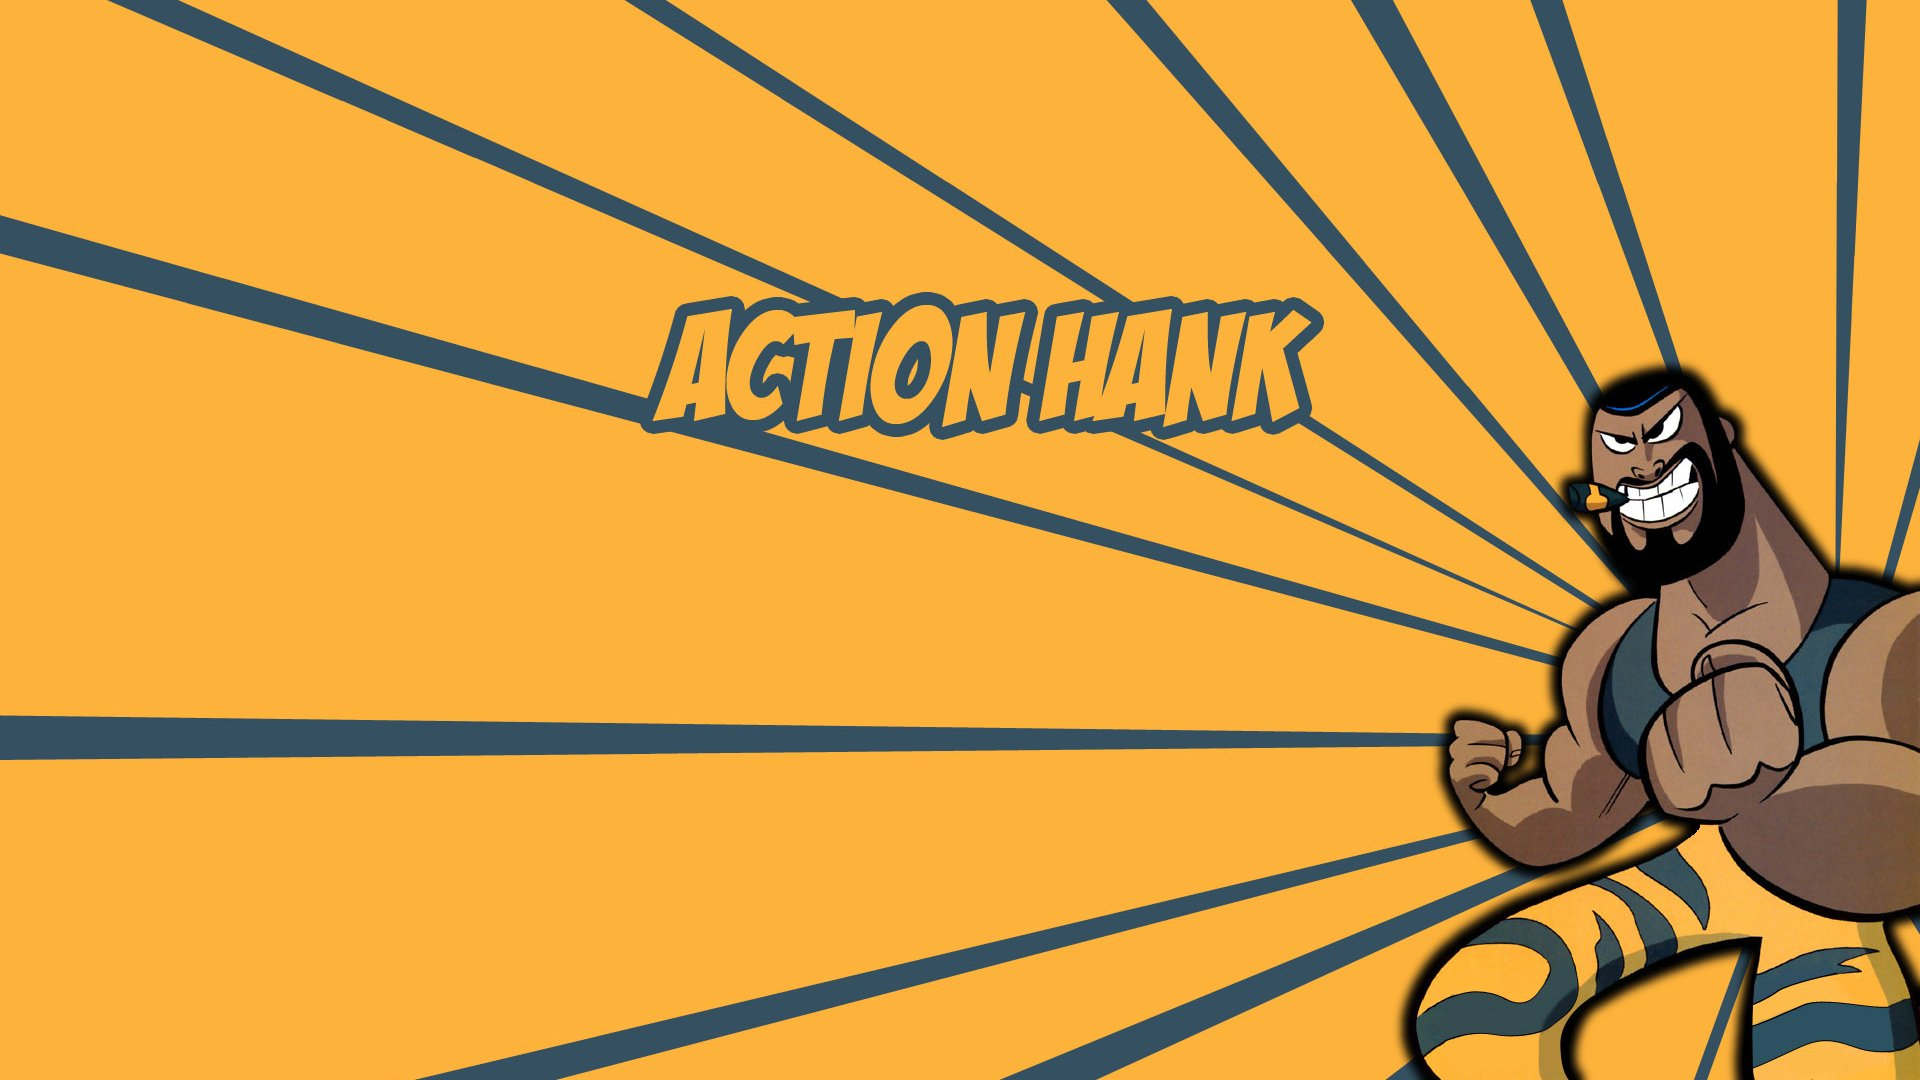 http://1.bp.blogspot.com/-9RGrsAt_Yqc/UDE4zDZsZvI/AAAAAAAADfc/bgfeqv2RdK8/s1920/cartoon-network-dexters-laboratory-action-hank-1080-wallpaper.jpg